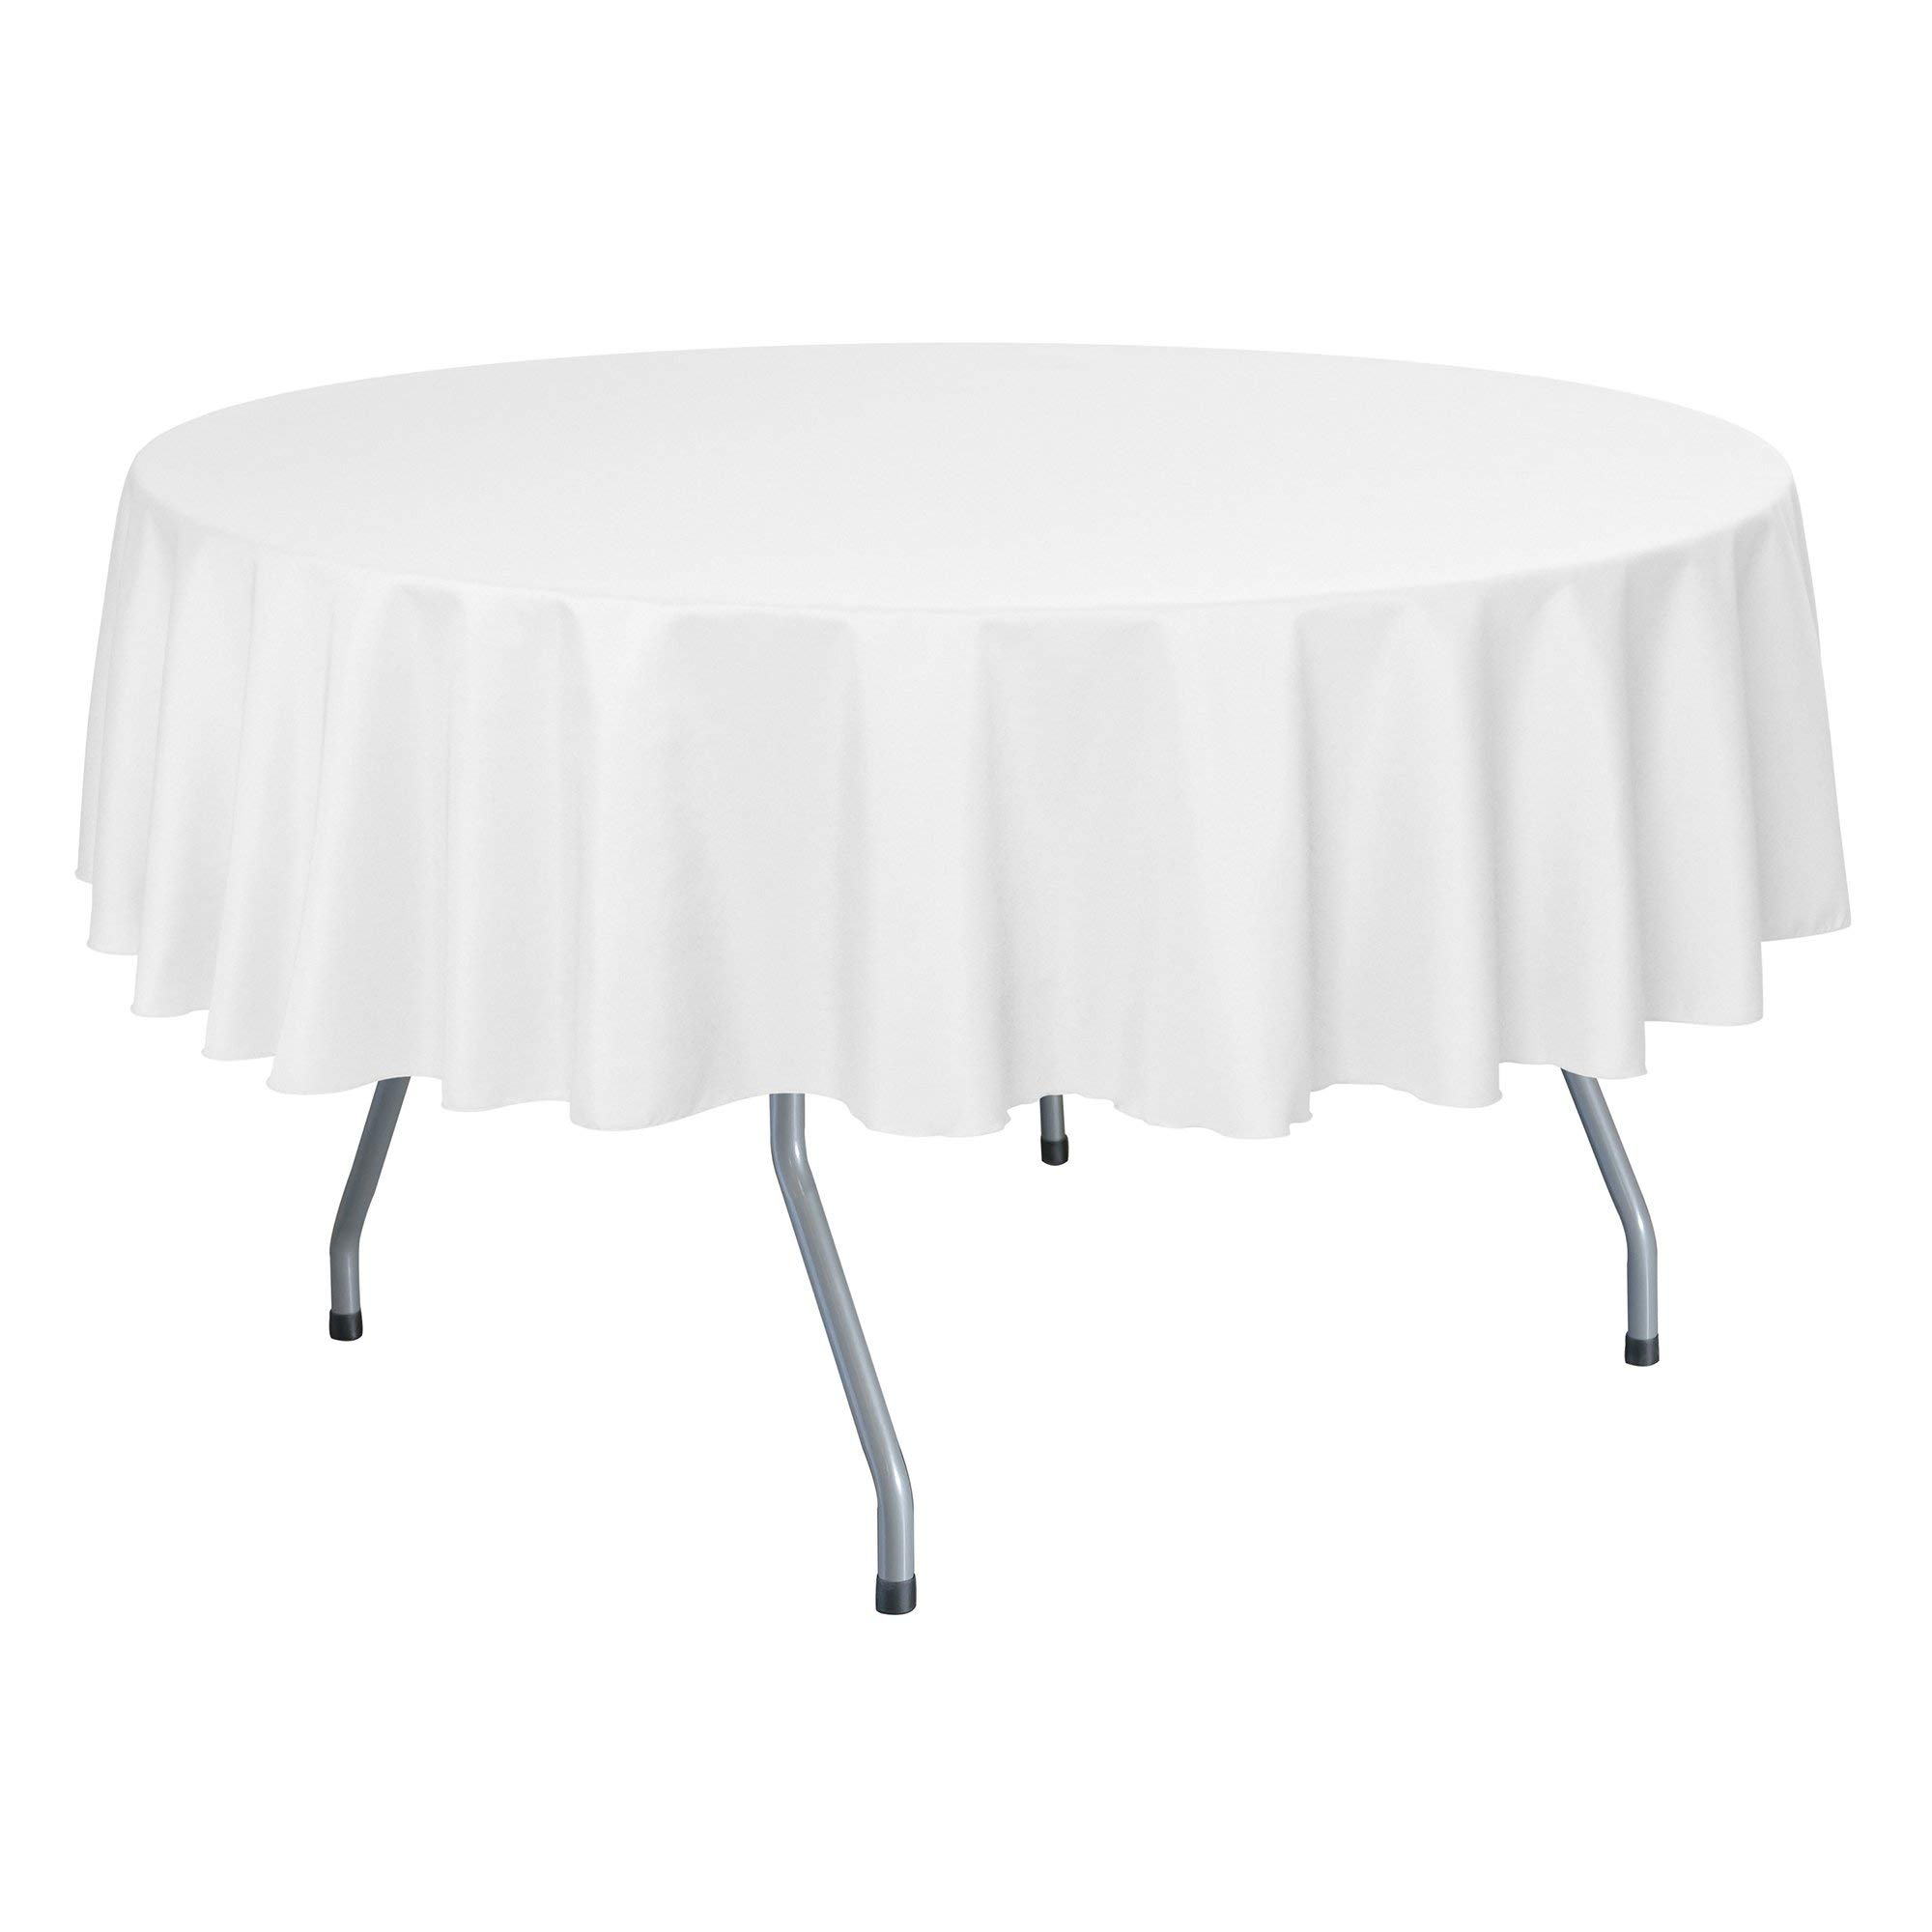 Ultimate Textile -10 Pack- 84-Inch Round Polyester Linen Tablecloth, White by Ultimate Textile